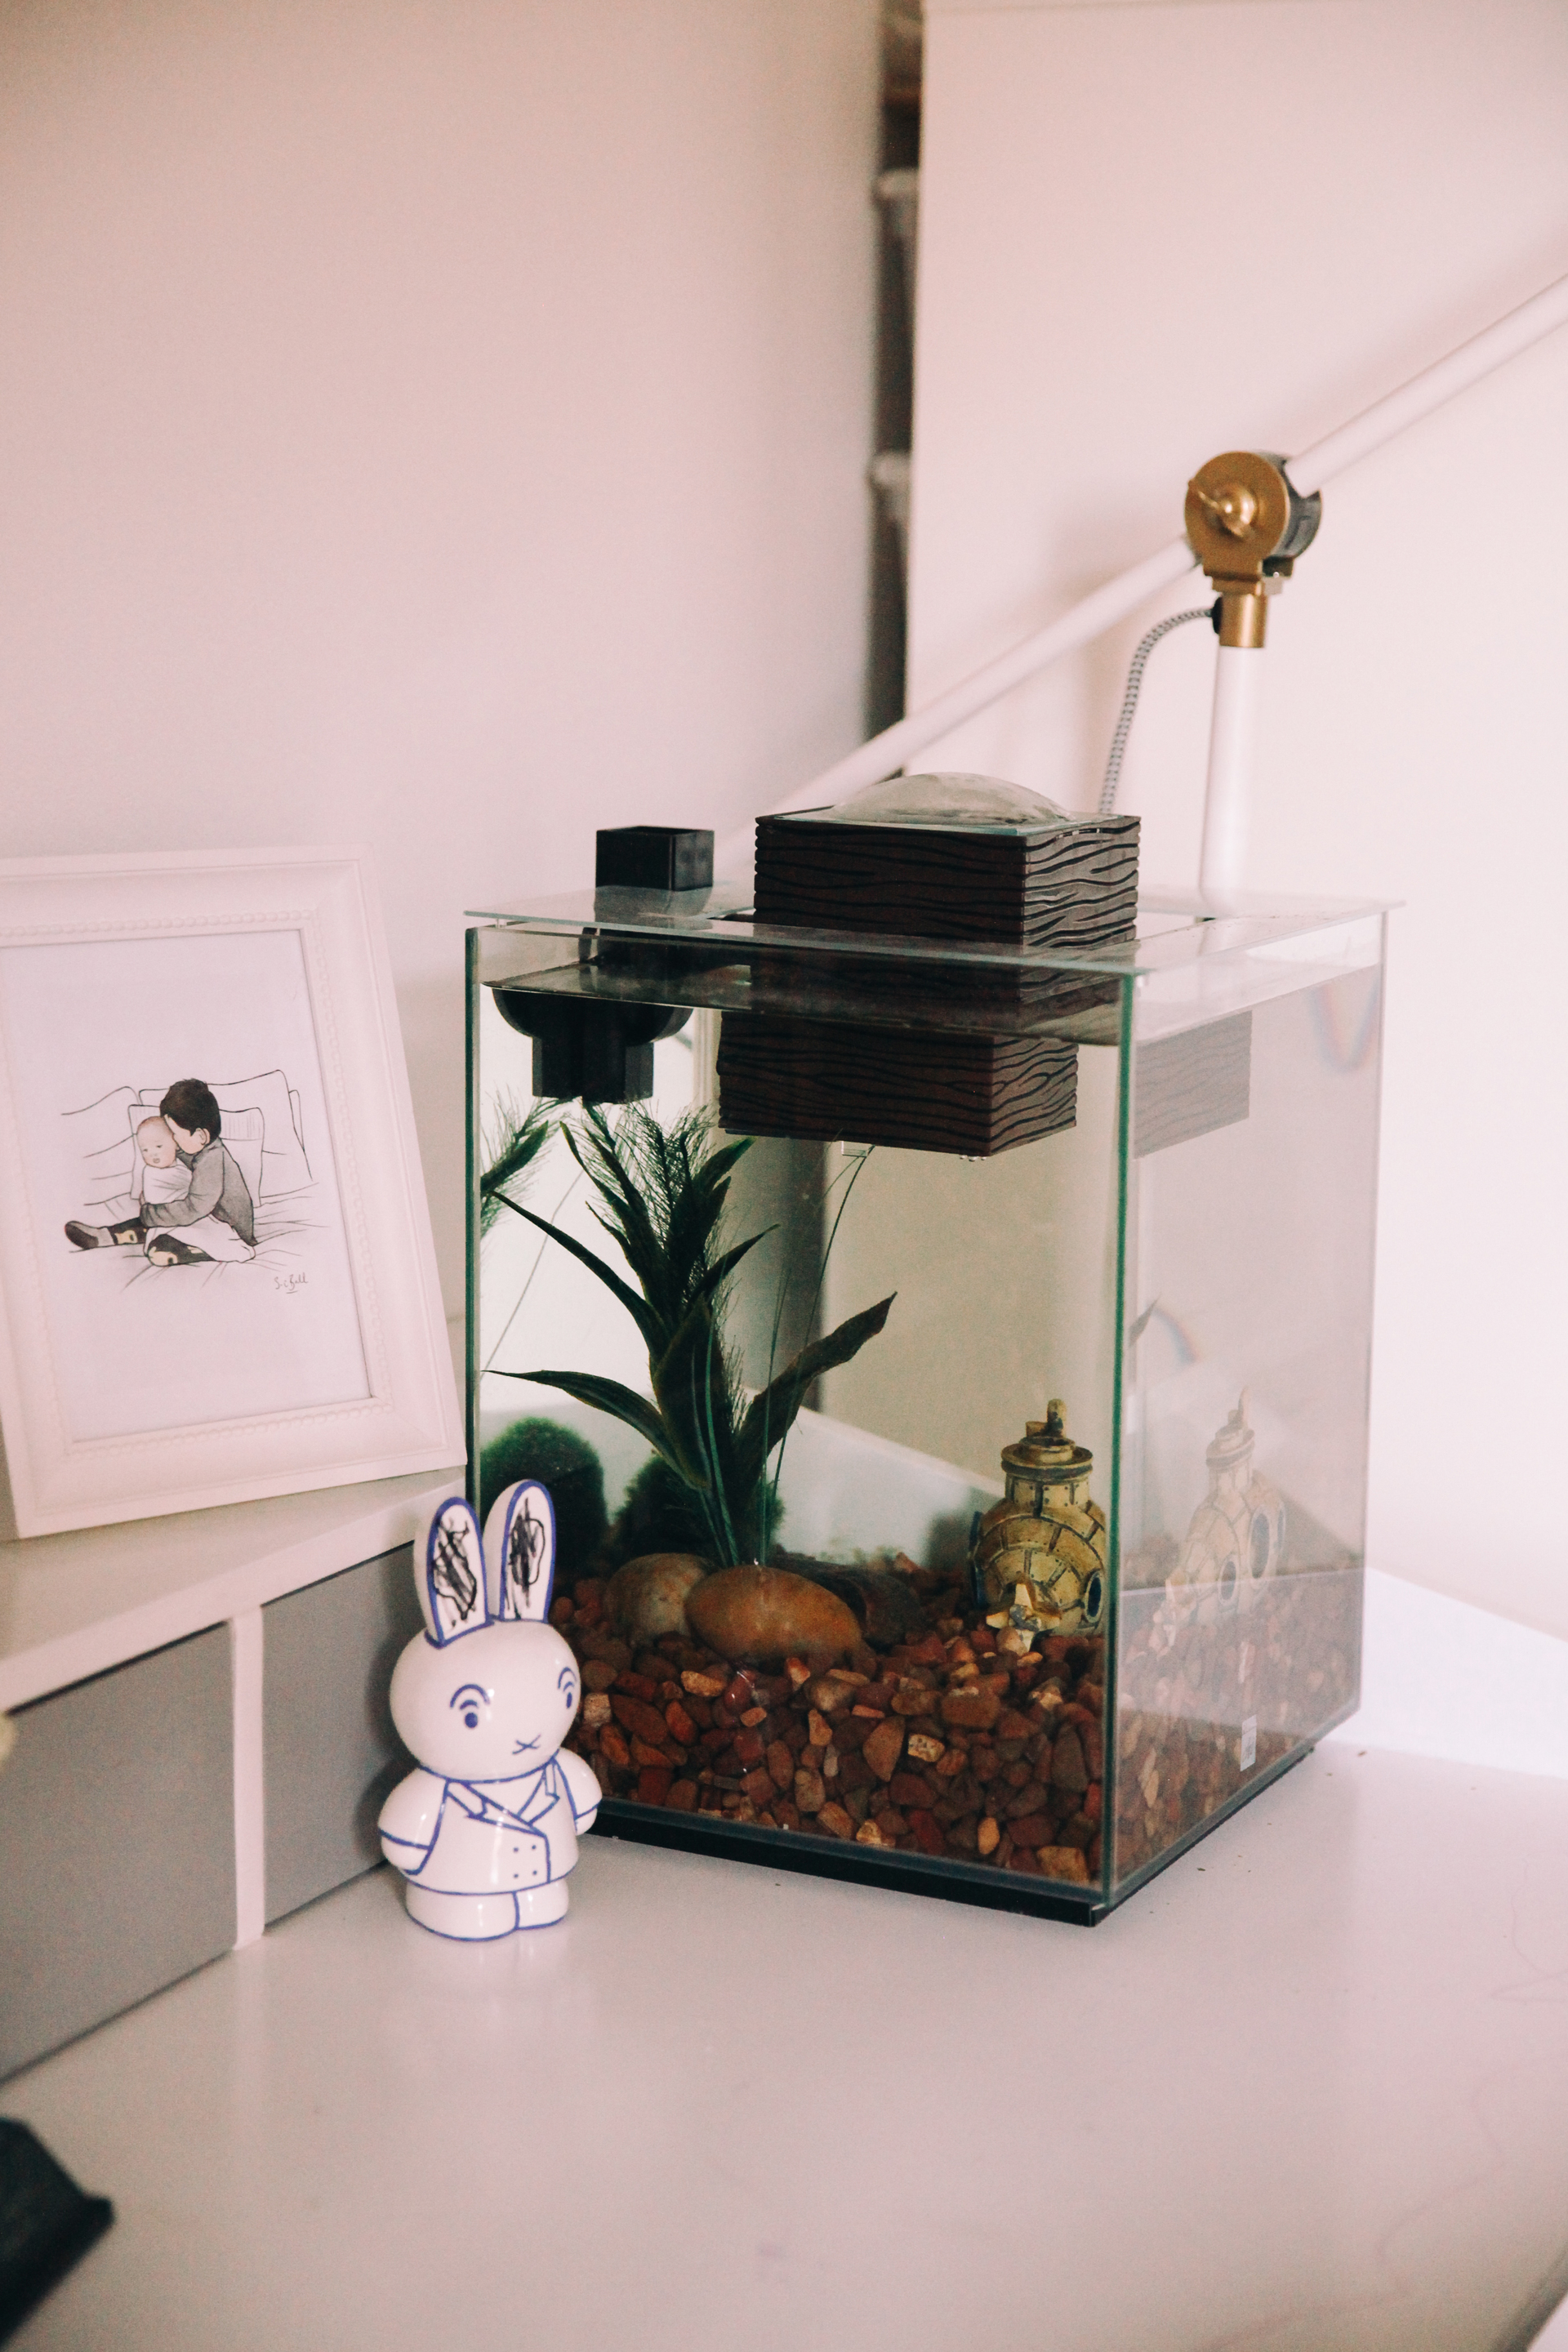 The day our fish died bluebirdkisses for Empty fish tank